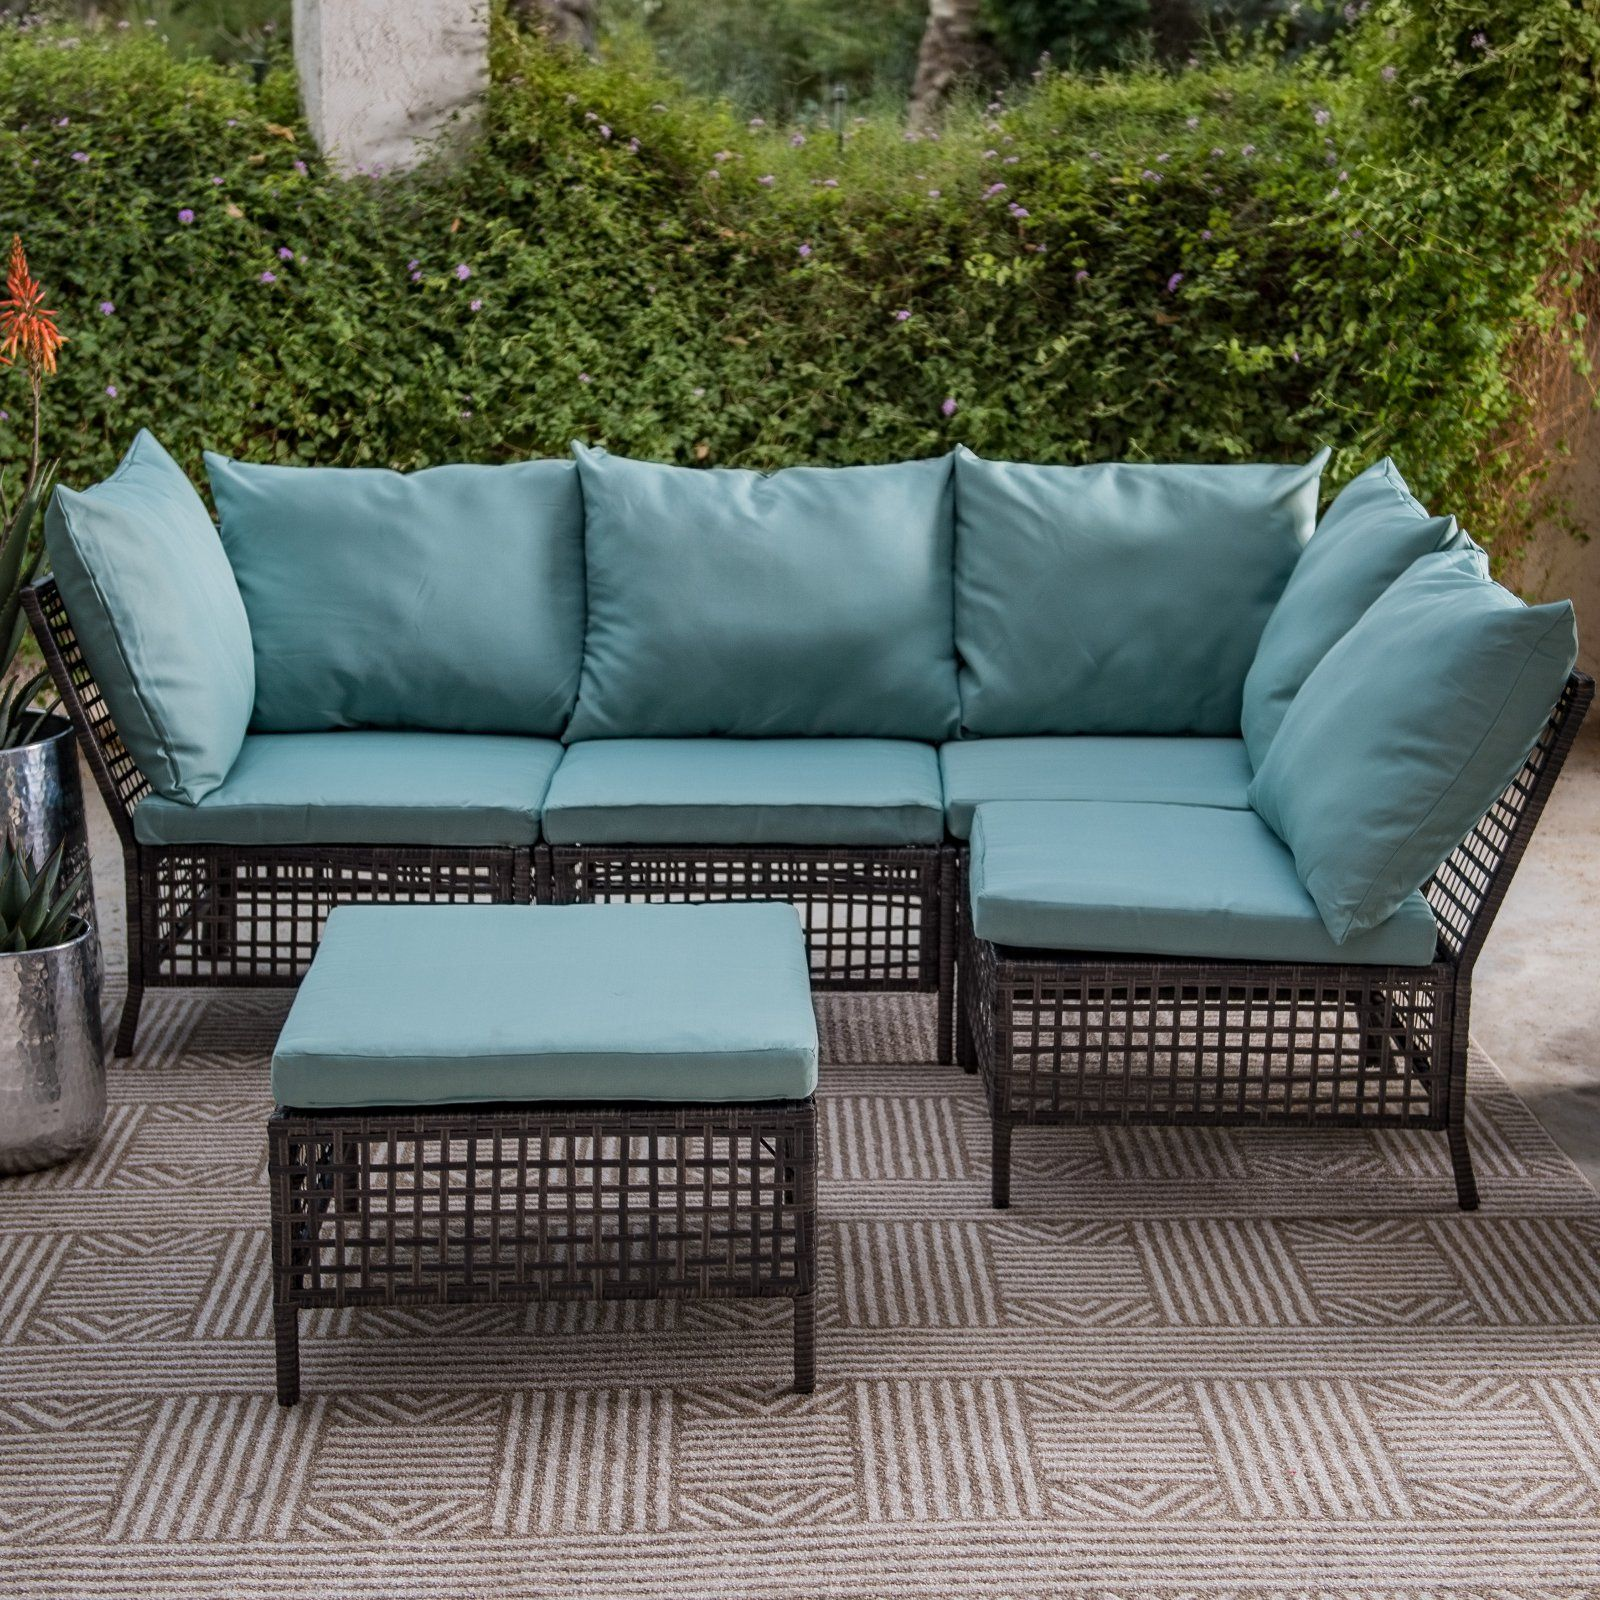 Outdoor Coral Coast Carmina All Weather Black Wicker Sectional